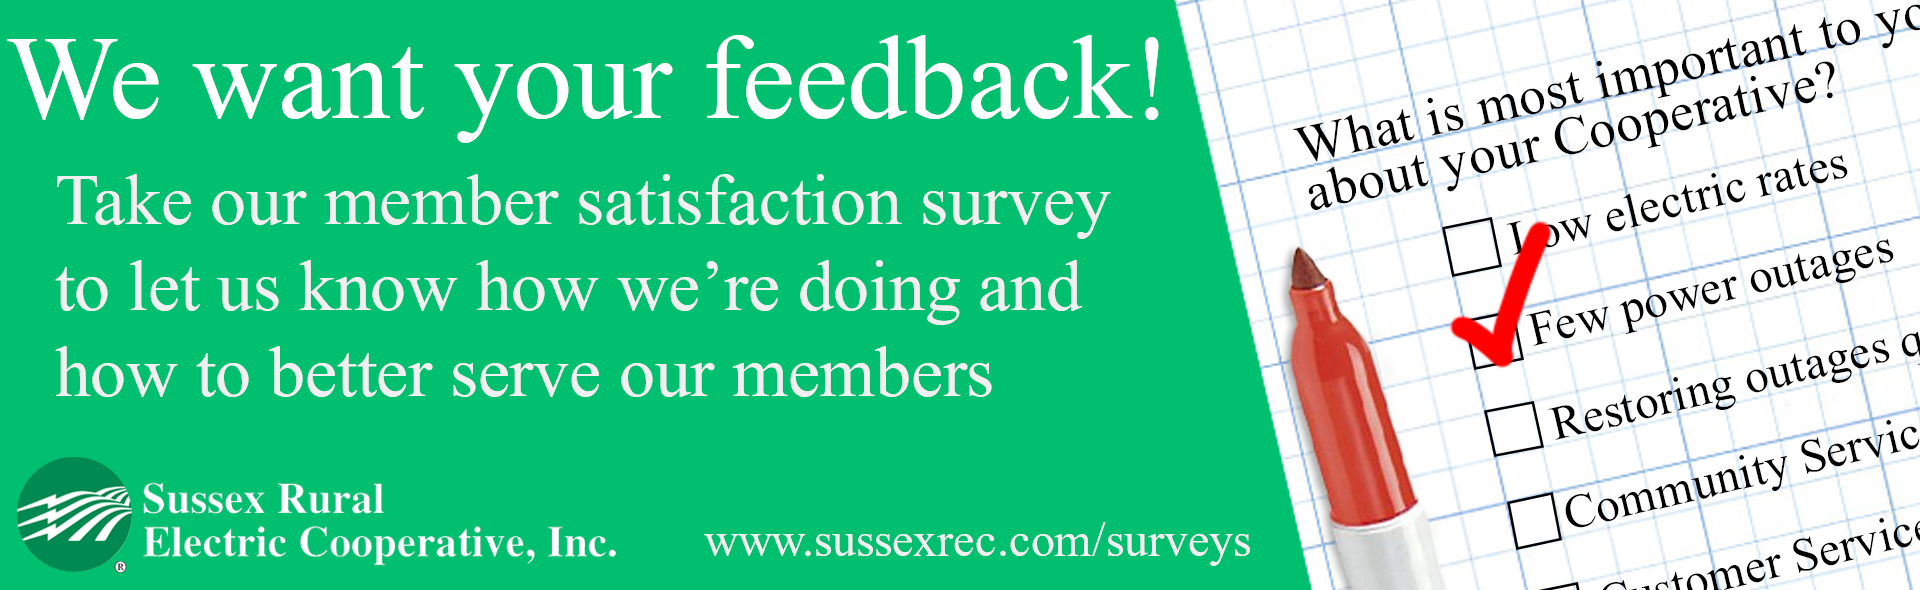 Take our member satisfaction survey to let us know how we're doing and how to better serve our member